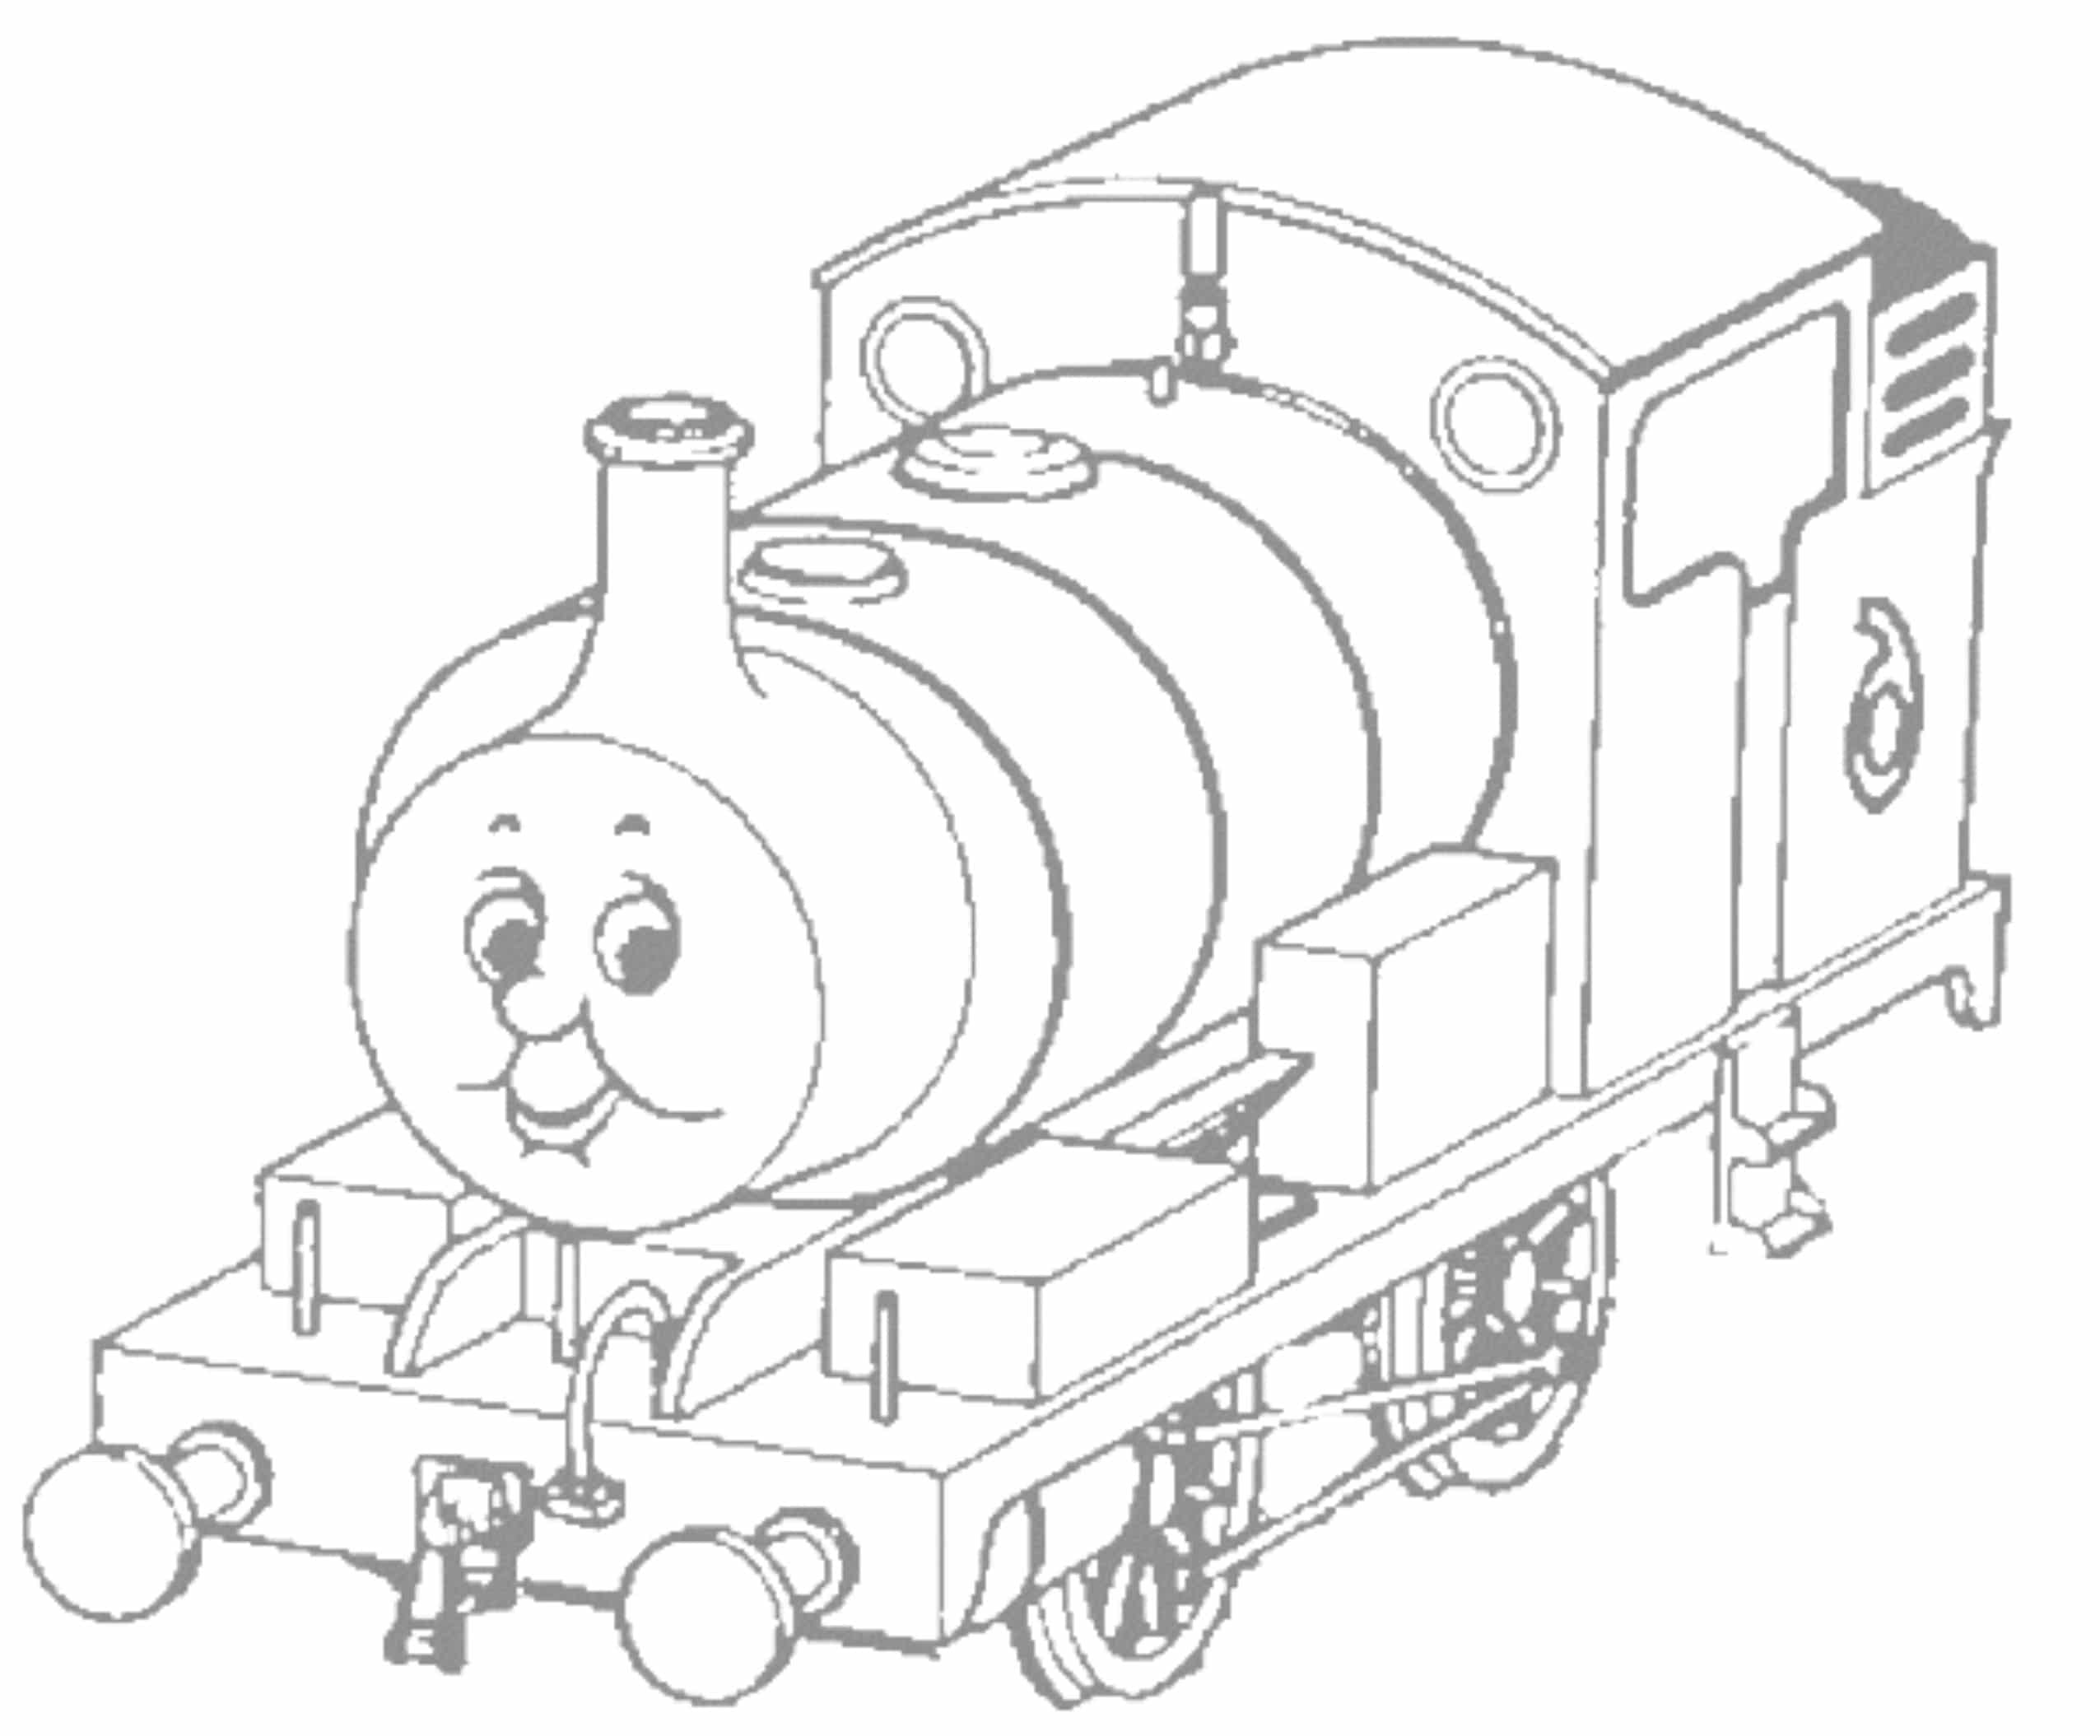 coloring train free printable train coloring pages for kids cool2bkids coloring train 1 1